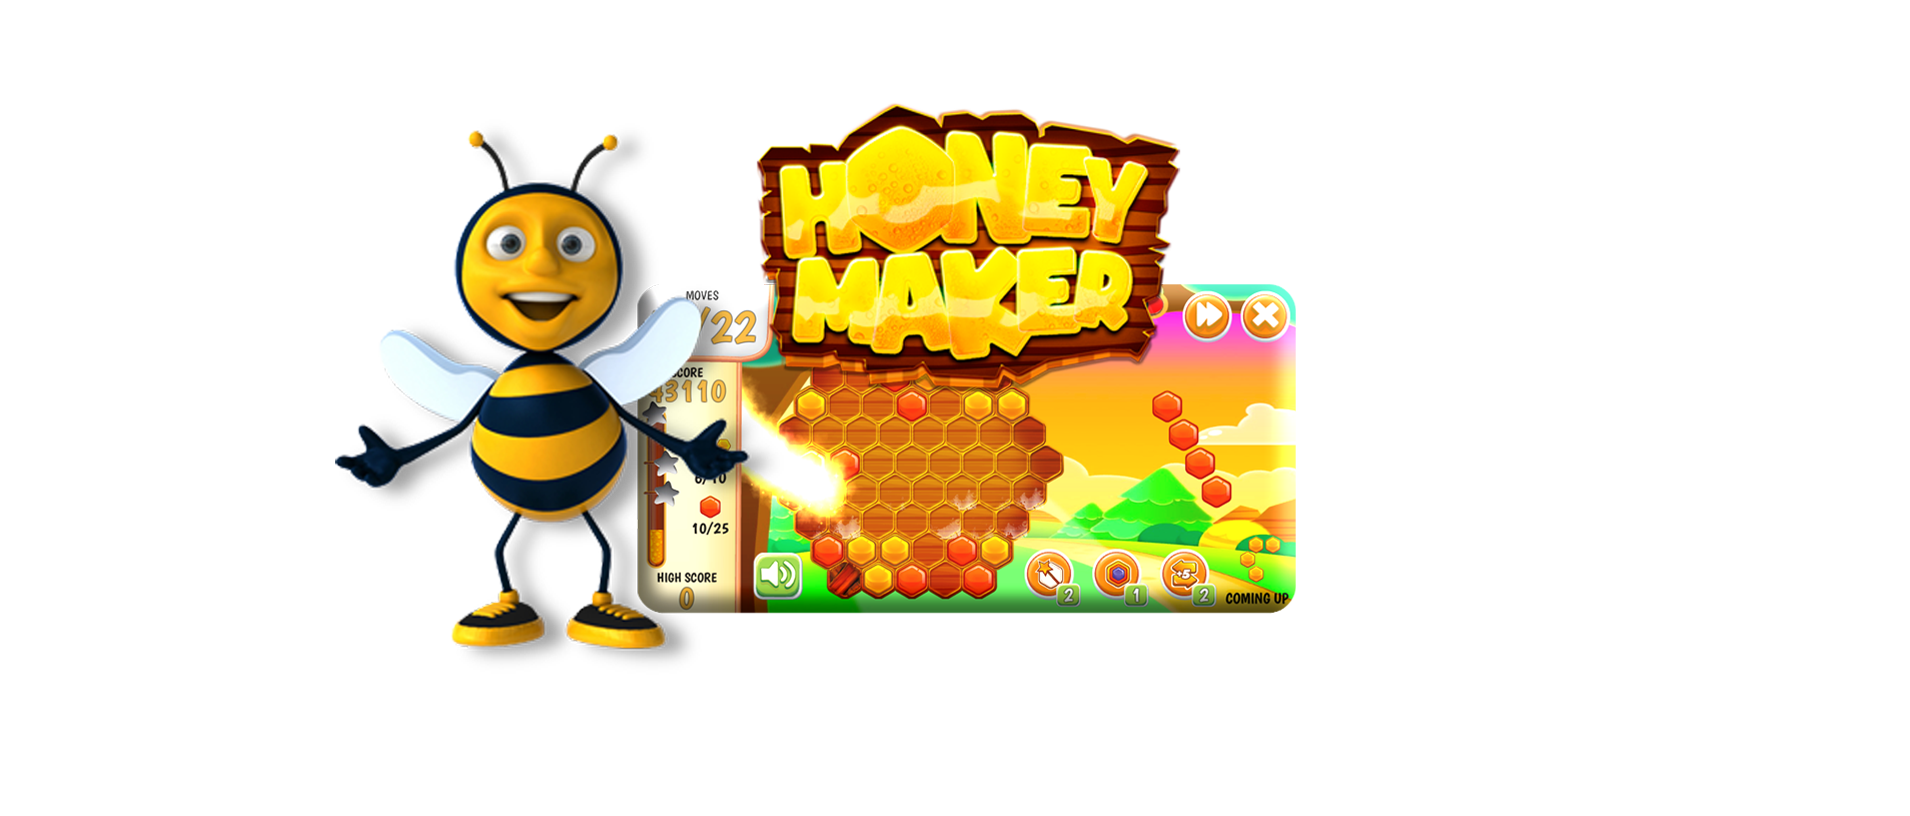 Honey Maker Online Puzzle Game Tournaments